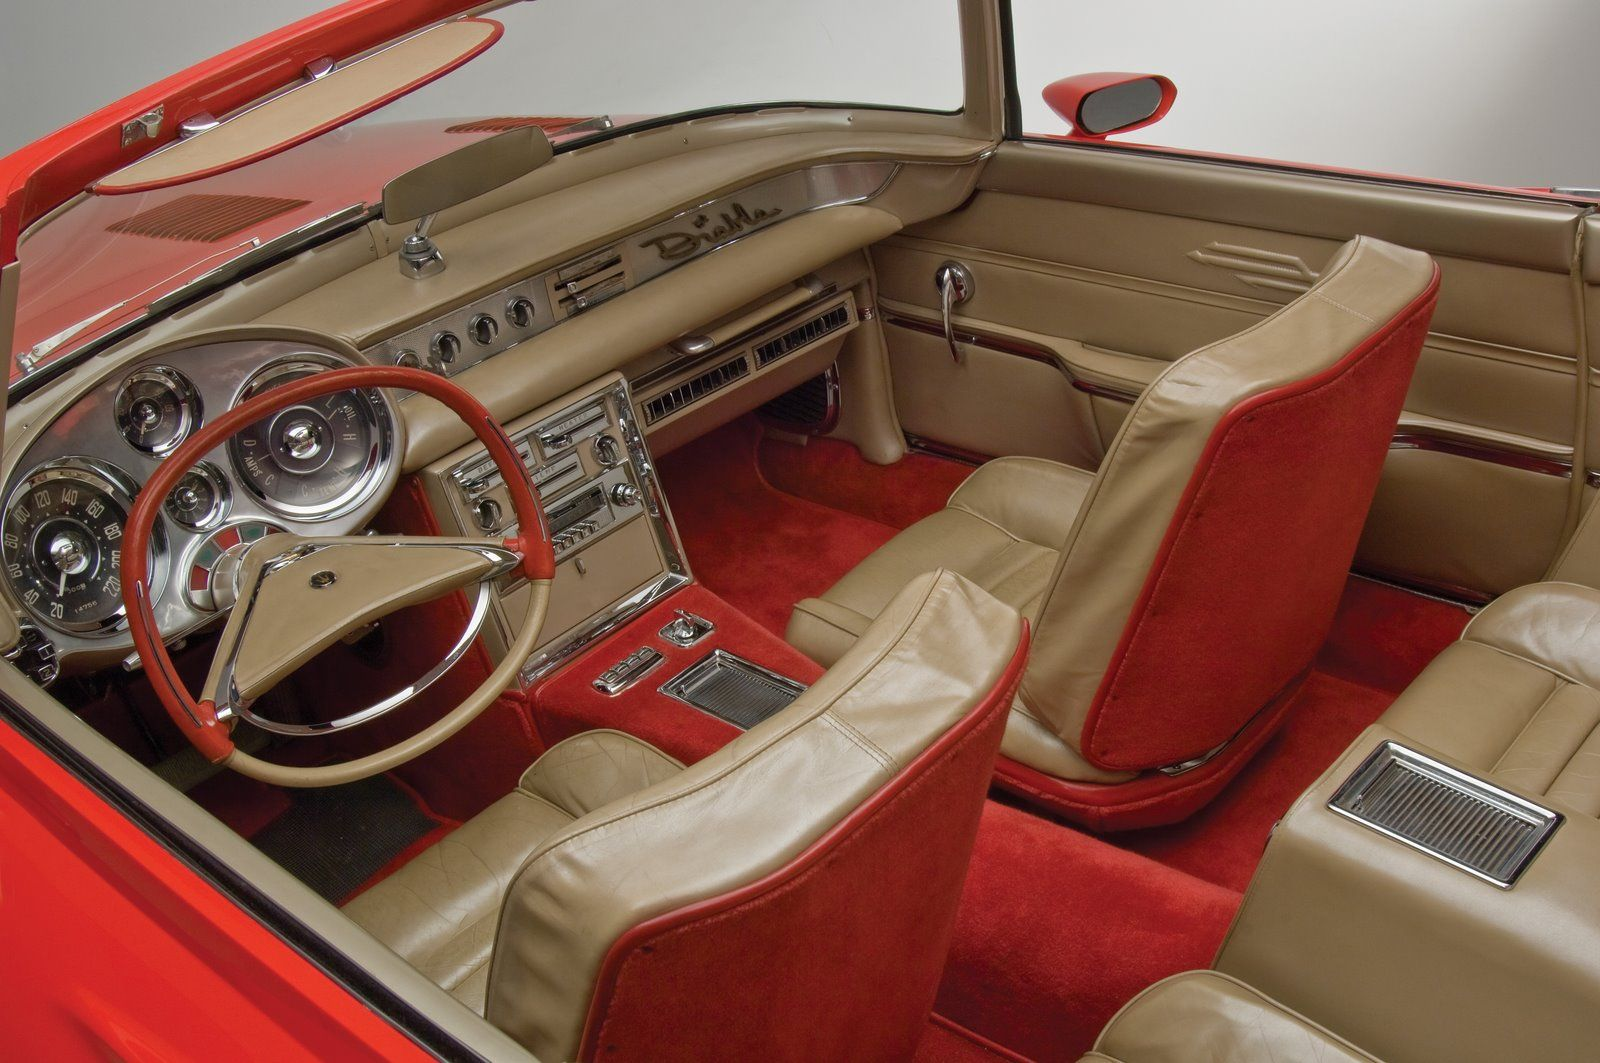 1950 39 s chryslers bing images auto truck interiors pinterest chrysler cars cars and. Black Bedroom Furniture Sets. Home Design Ideas